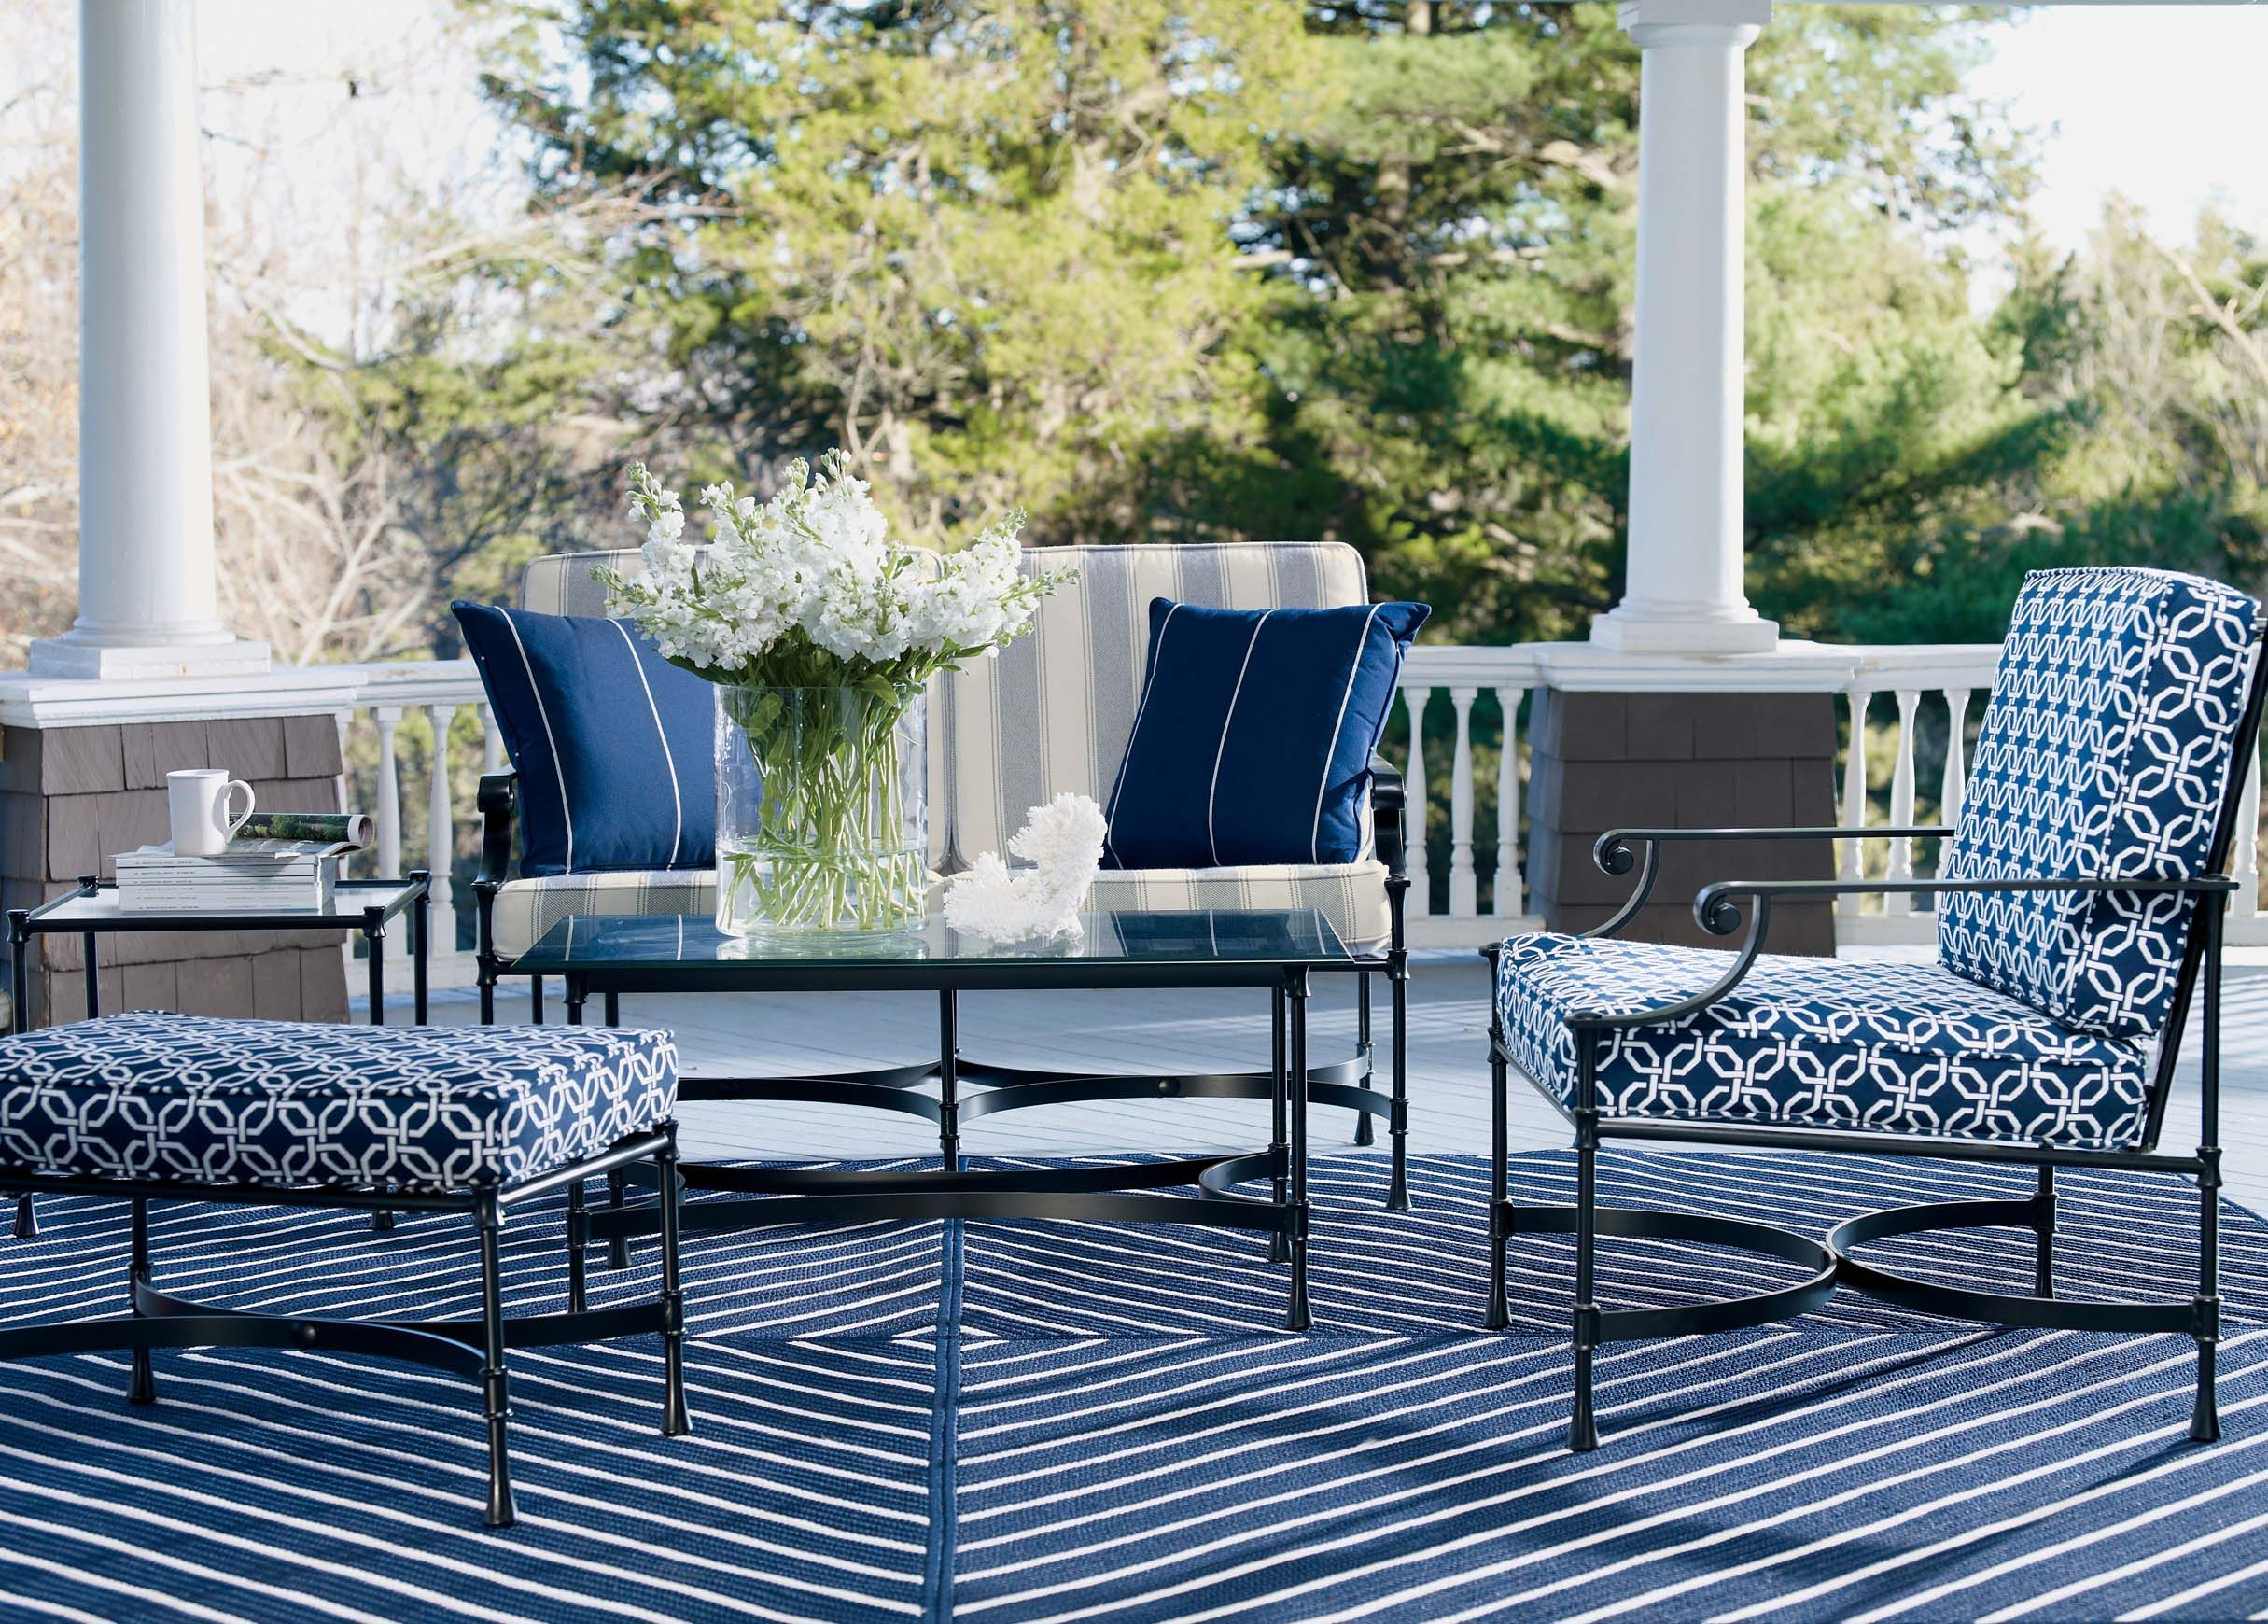 Go Blue Home and Garden Ethan Allen Space outdoor